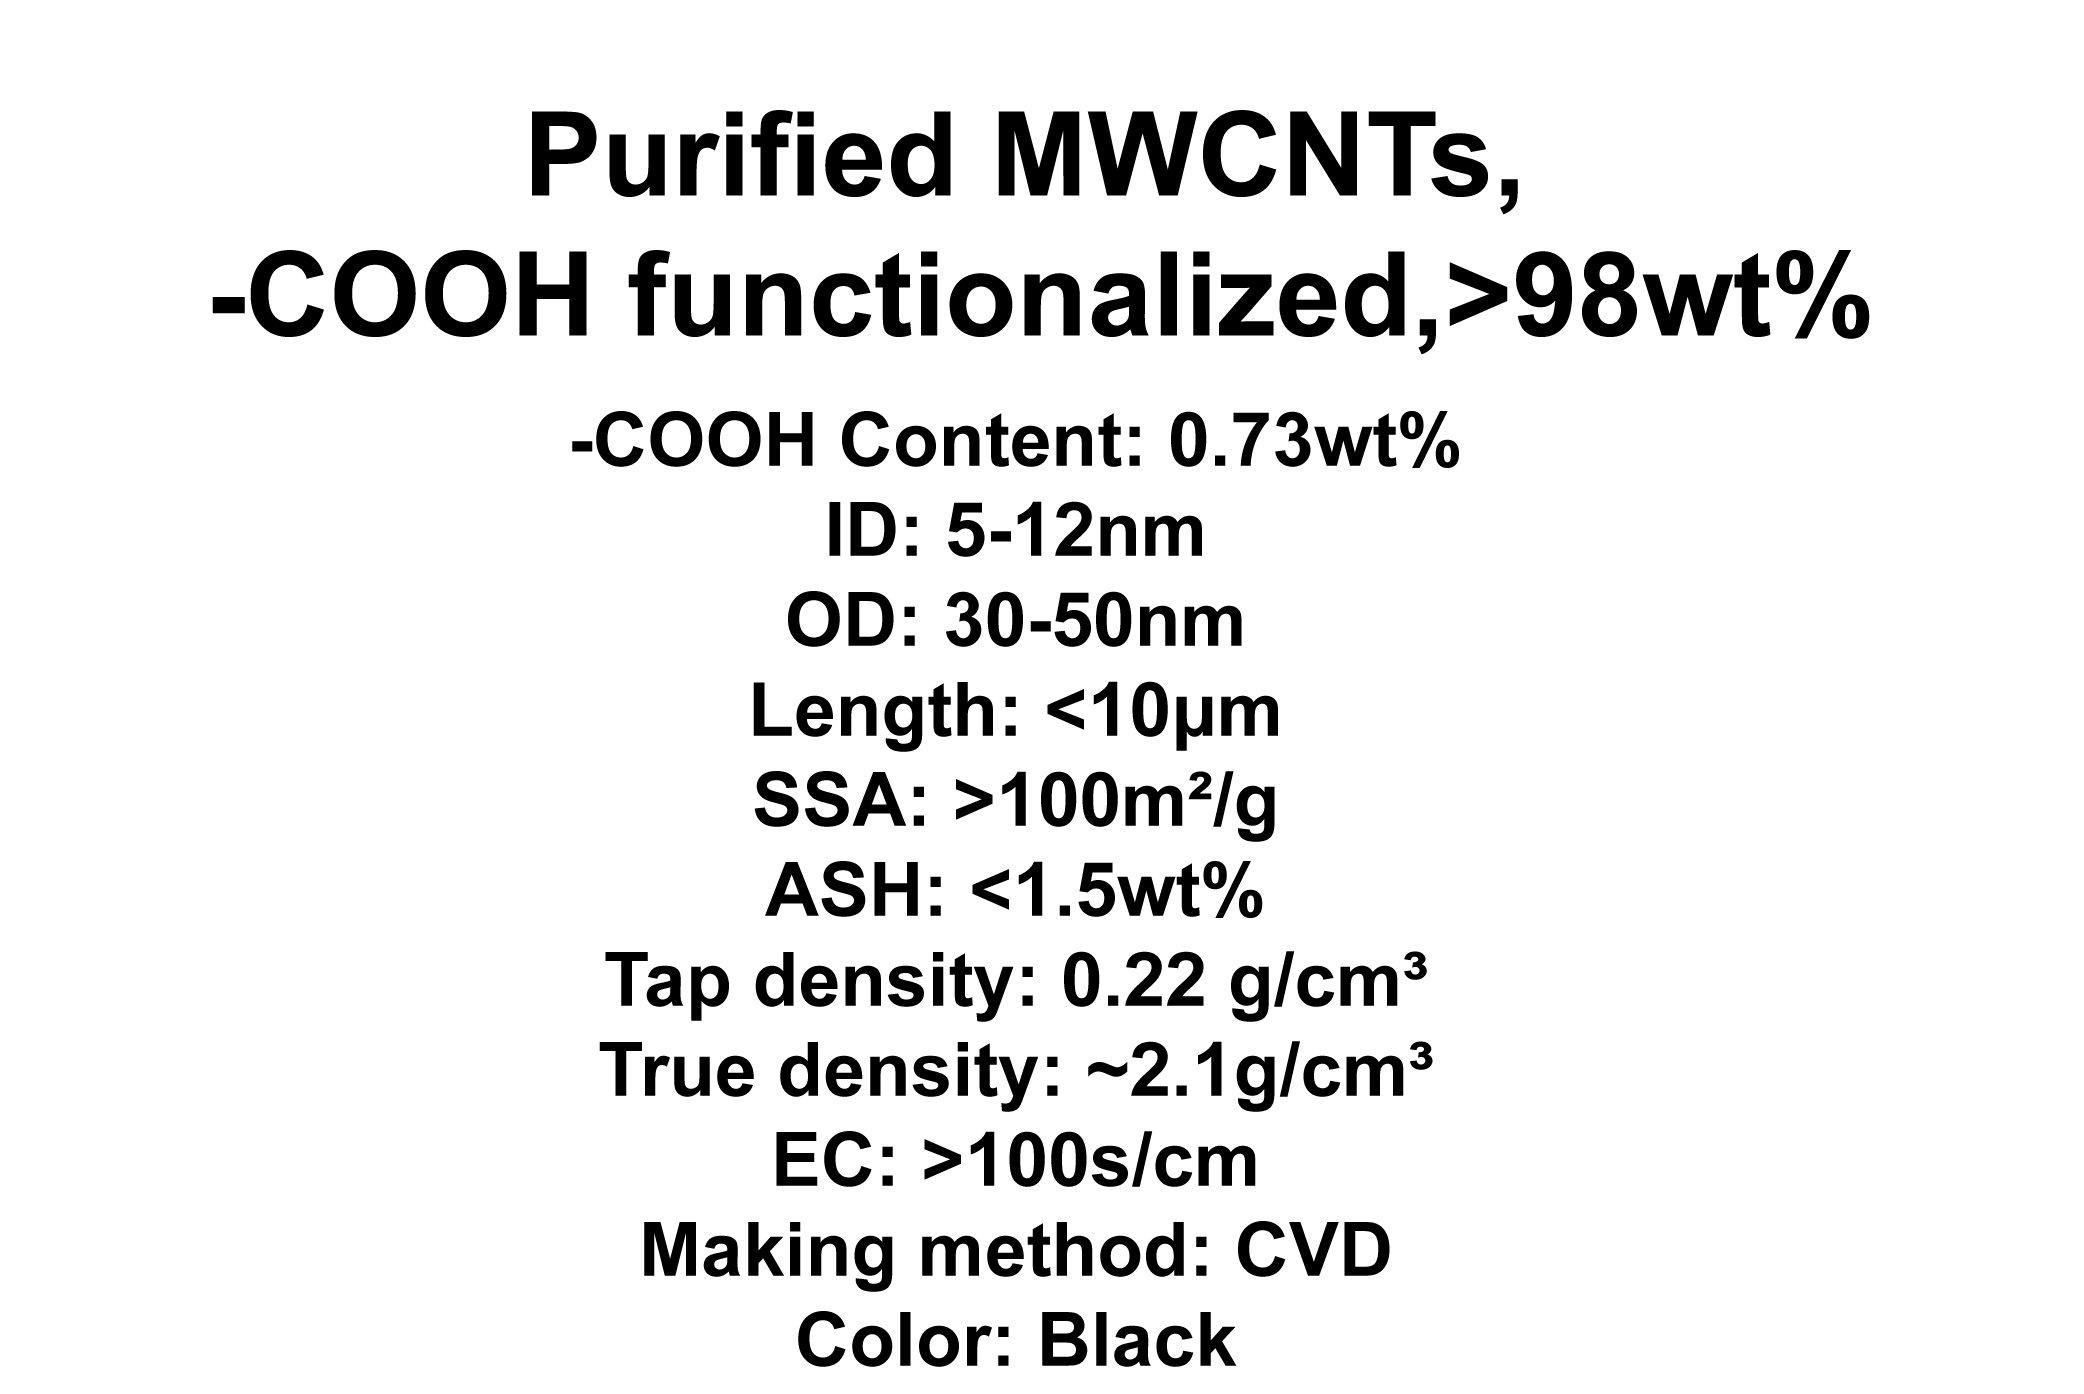 Purified MWCNTs, -COOH functionalized (TNMC7)